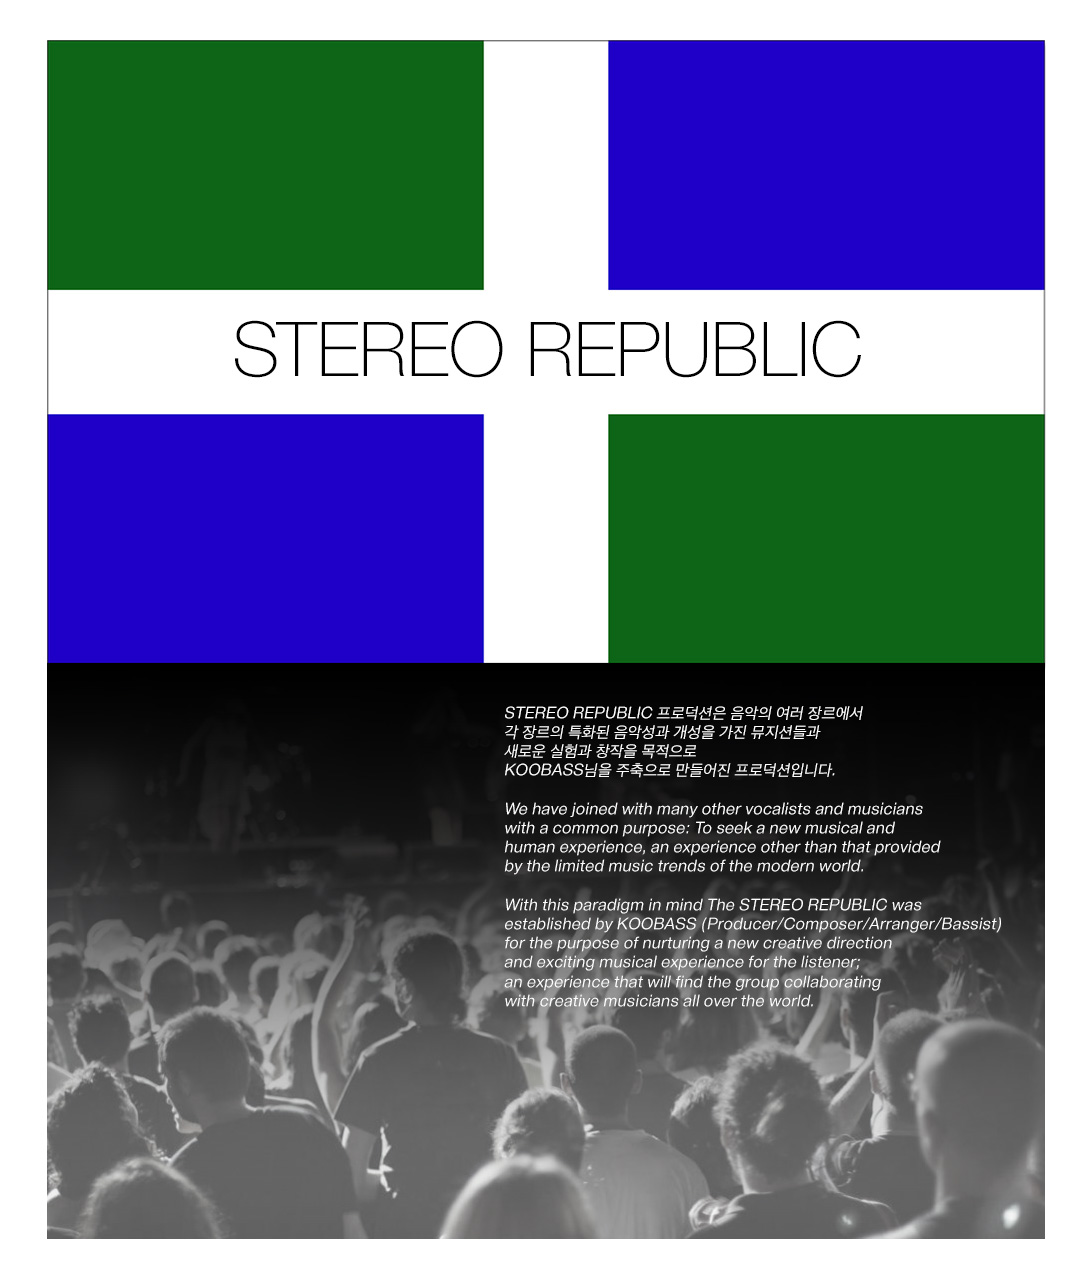 about_stereo_republic